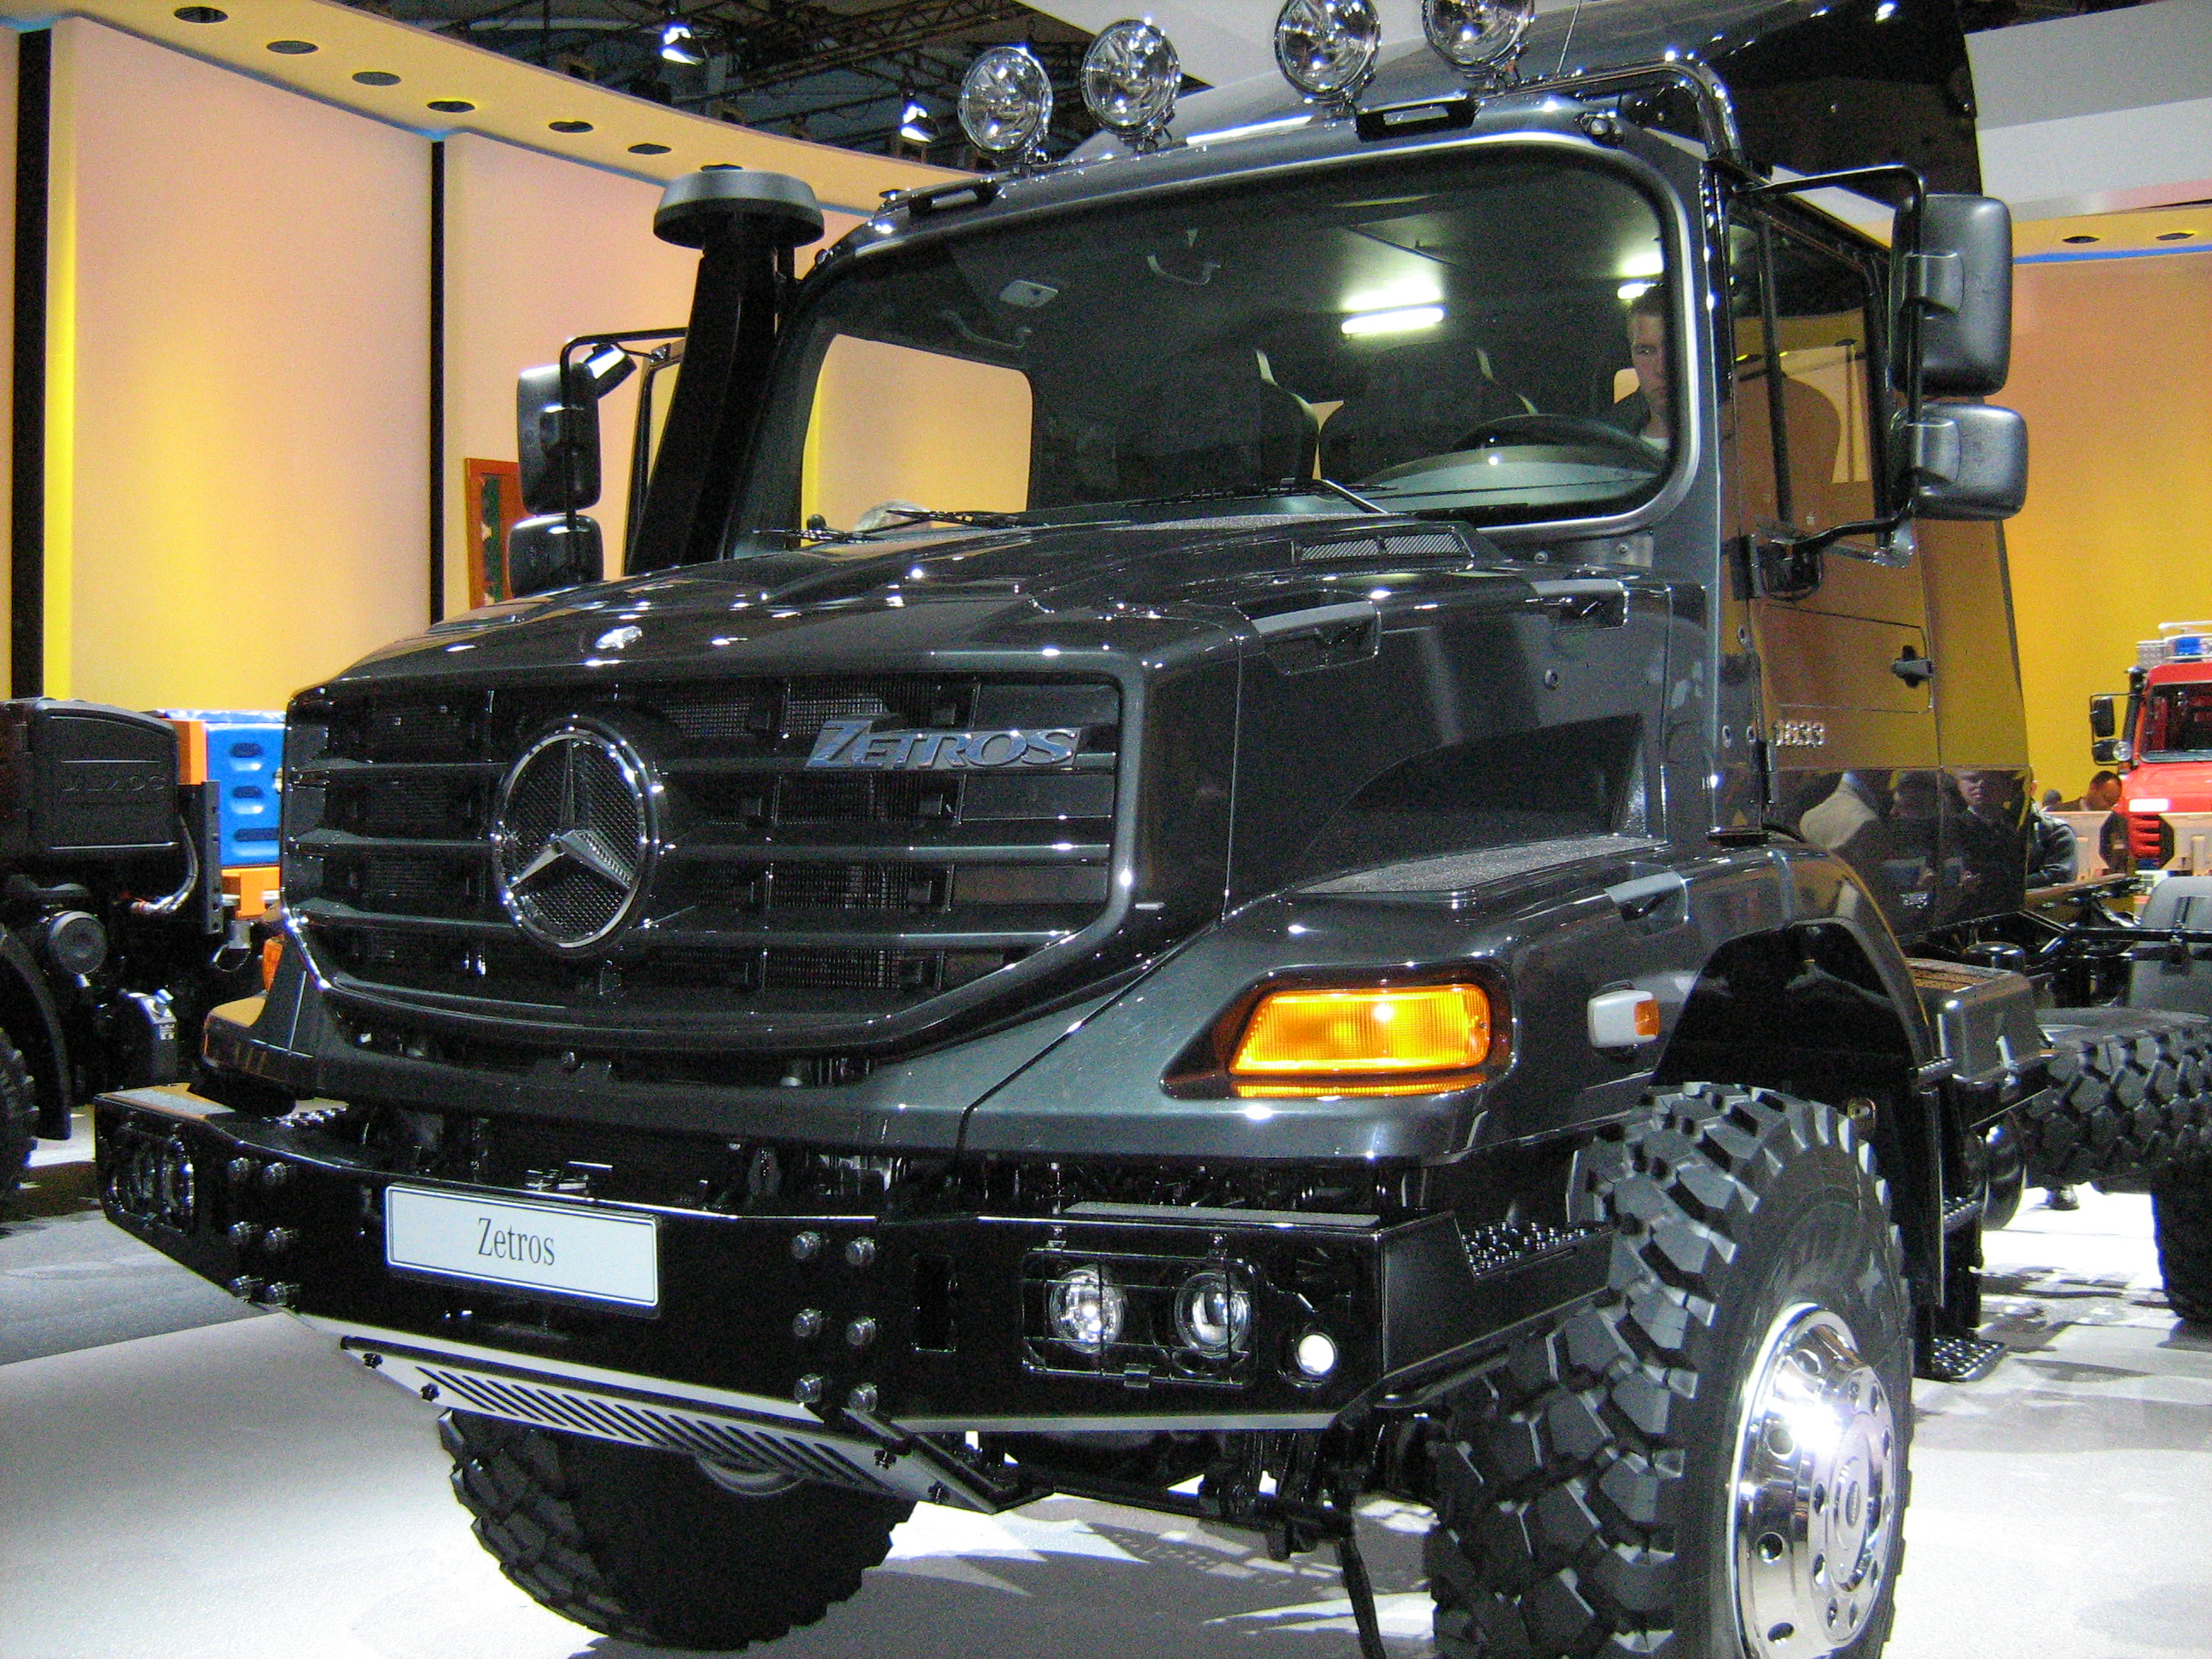 Mercedes Zetros Camping Car